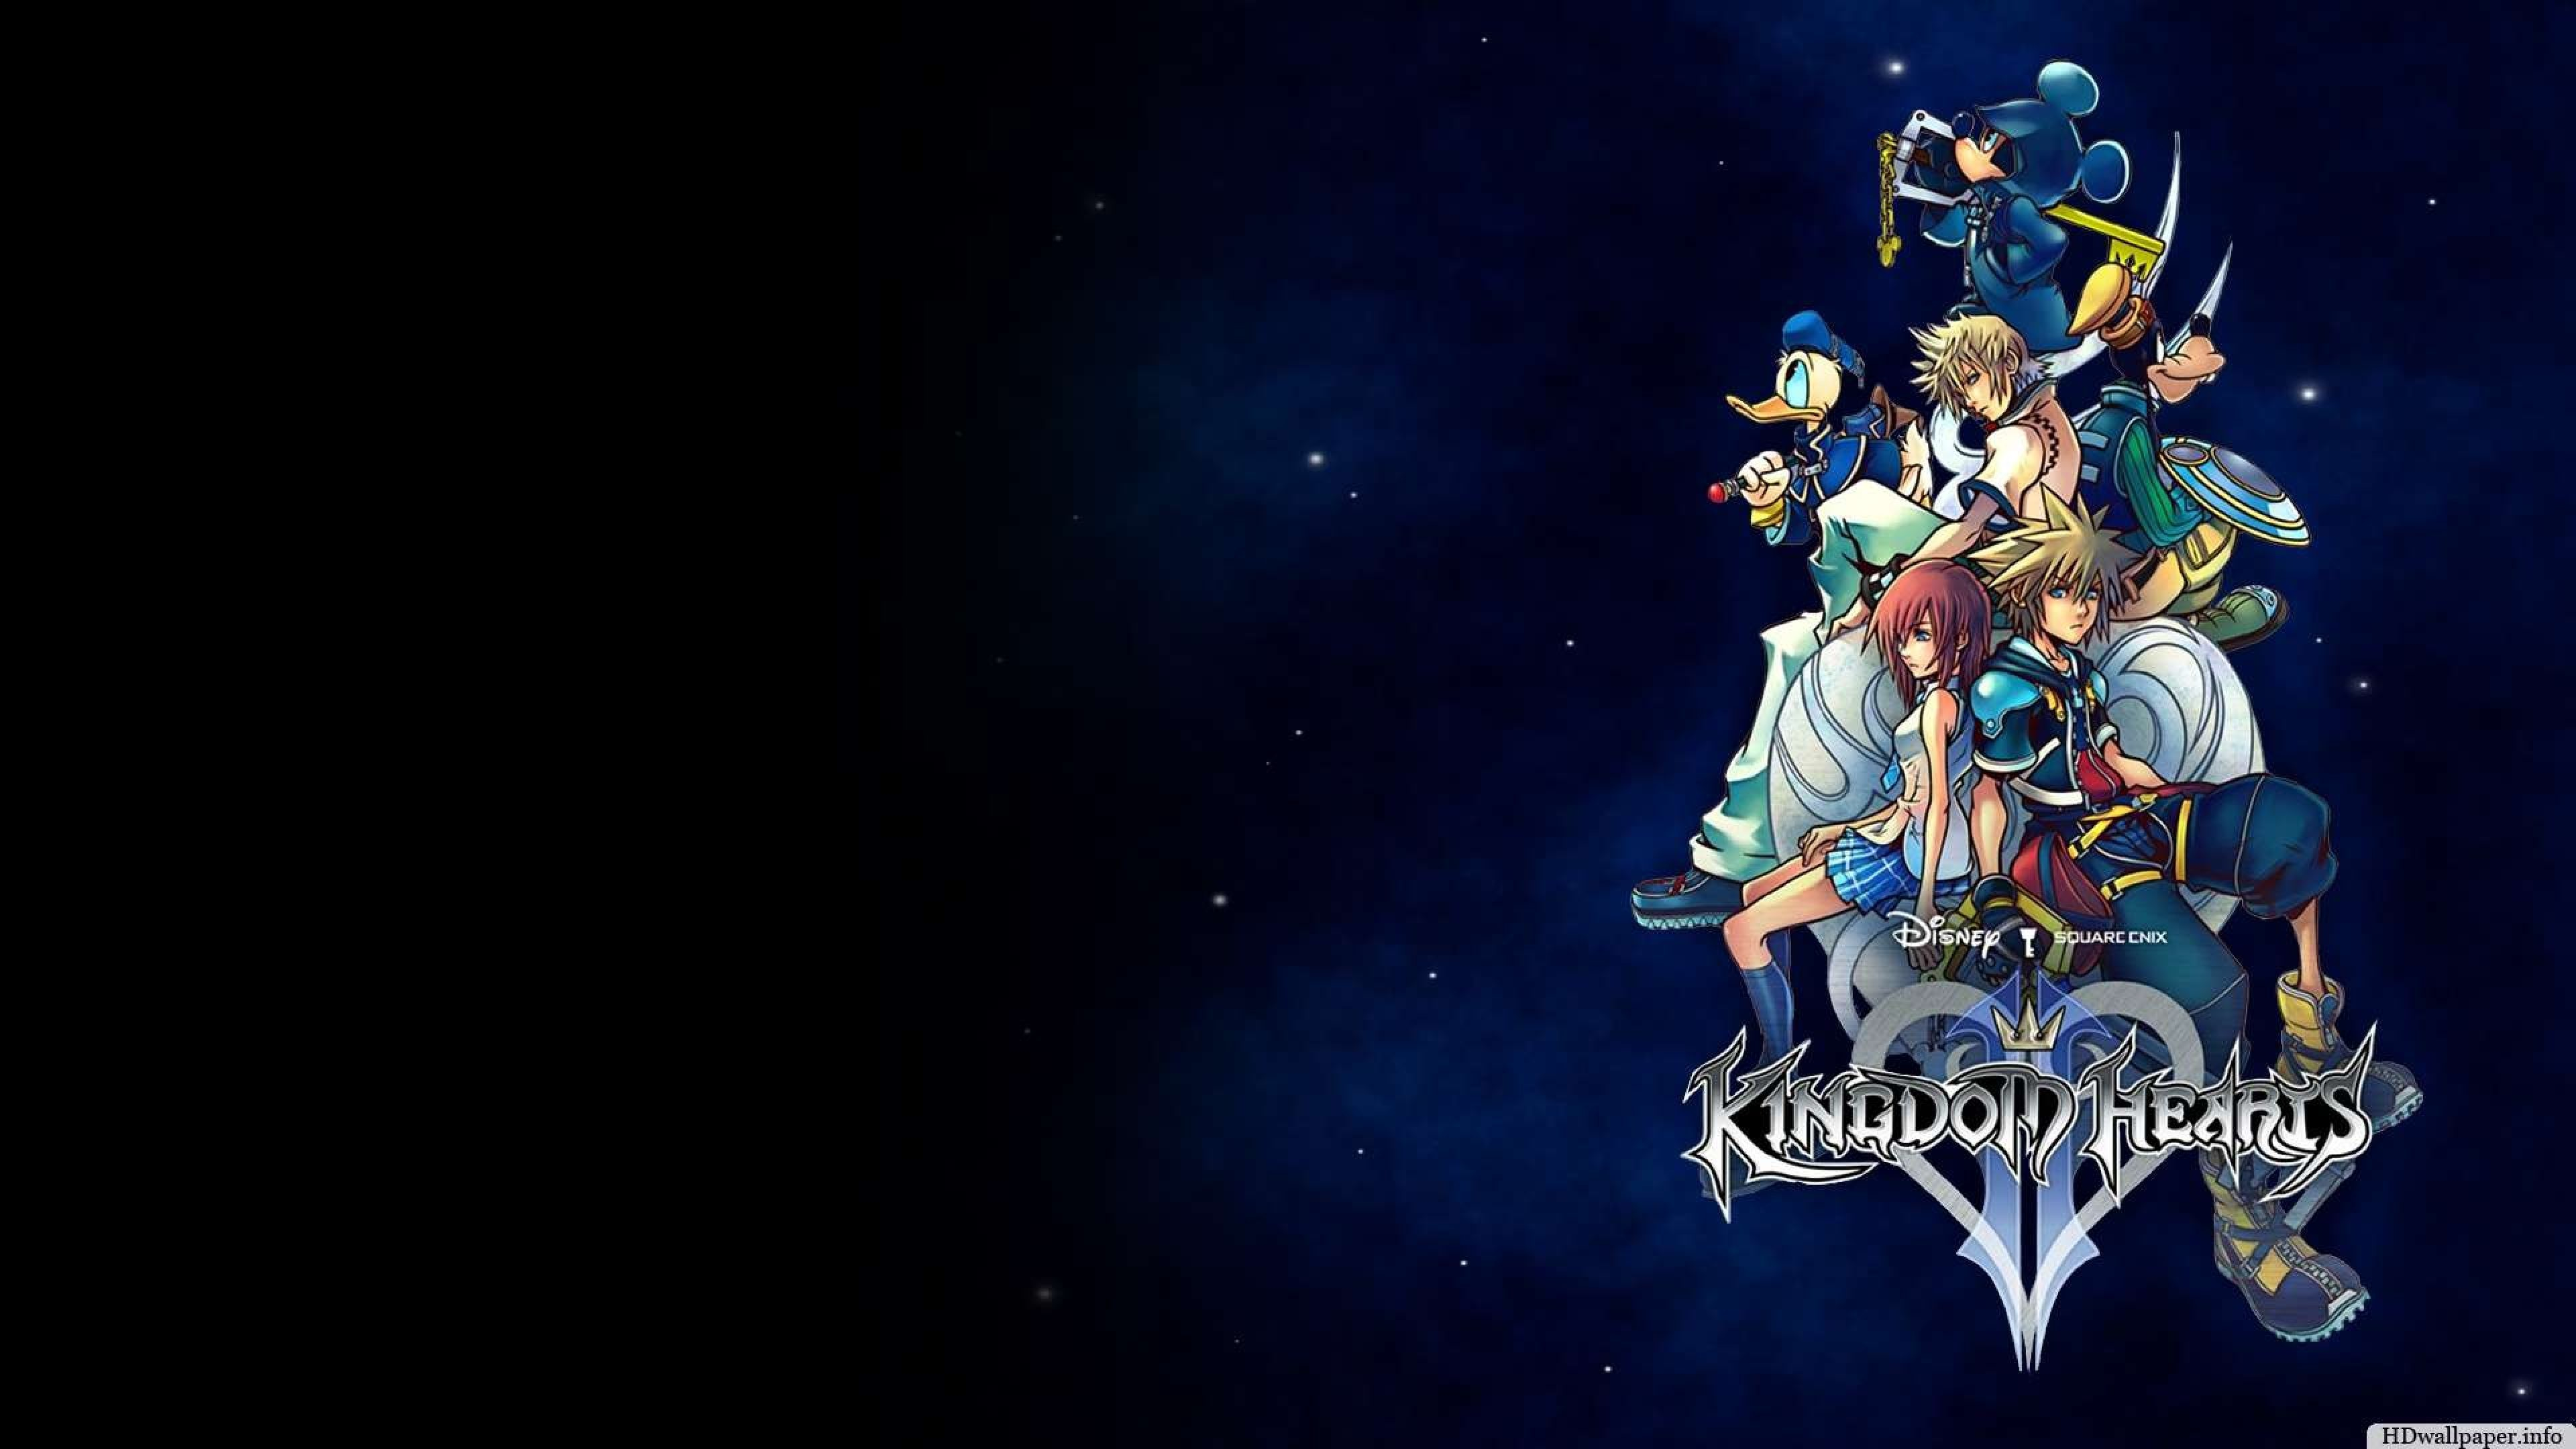 3840x2160 Kingdom Of Hearts Wallpaper Hd | HD Wallpapers